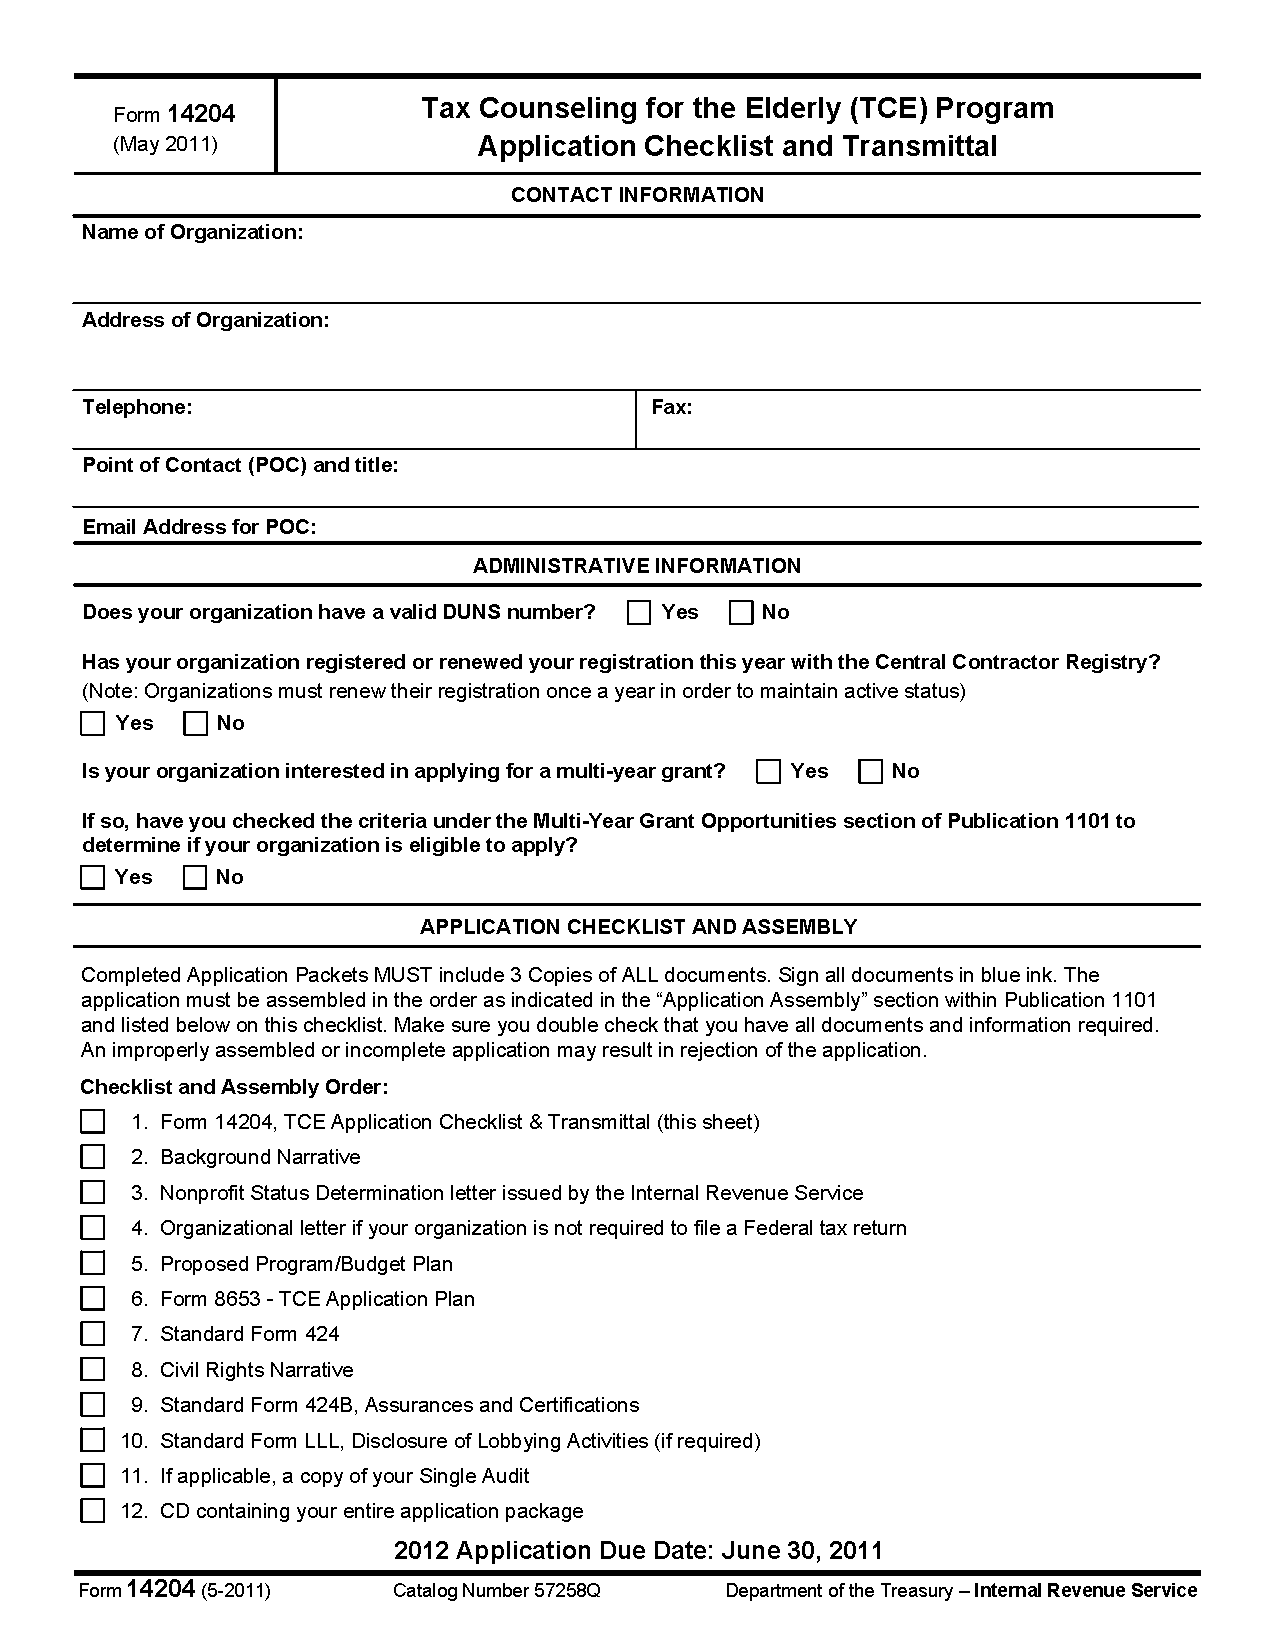 Form 14204 tax counseling for the elderly grant application cover page view all 2011 irs tax forms falaconquin